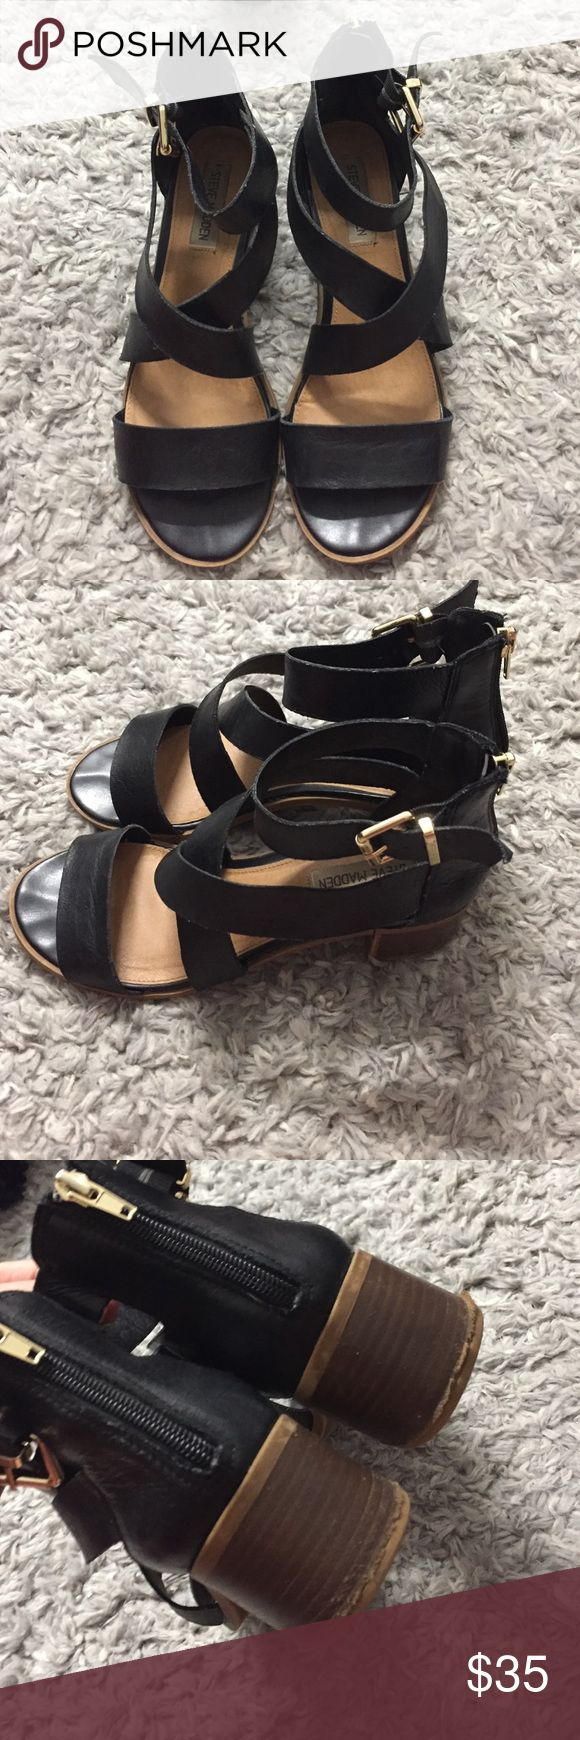 Strappy Steve Madden Platform Sandals Great shoes! Have hardly been worn, but have slight scuffing on the heel block. Genuine leather+Manmade materials, but good quality and no cracking. Comfortable and easy to wear for long periods of time :-) Steve Madden Shoes Sandals